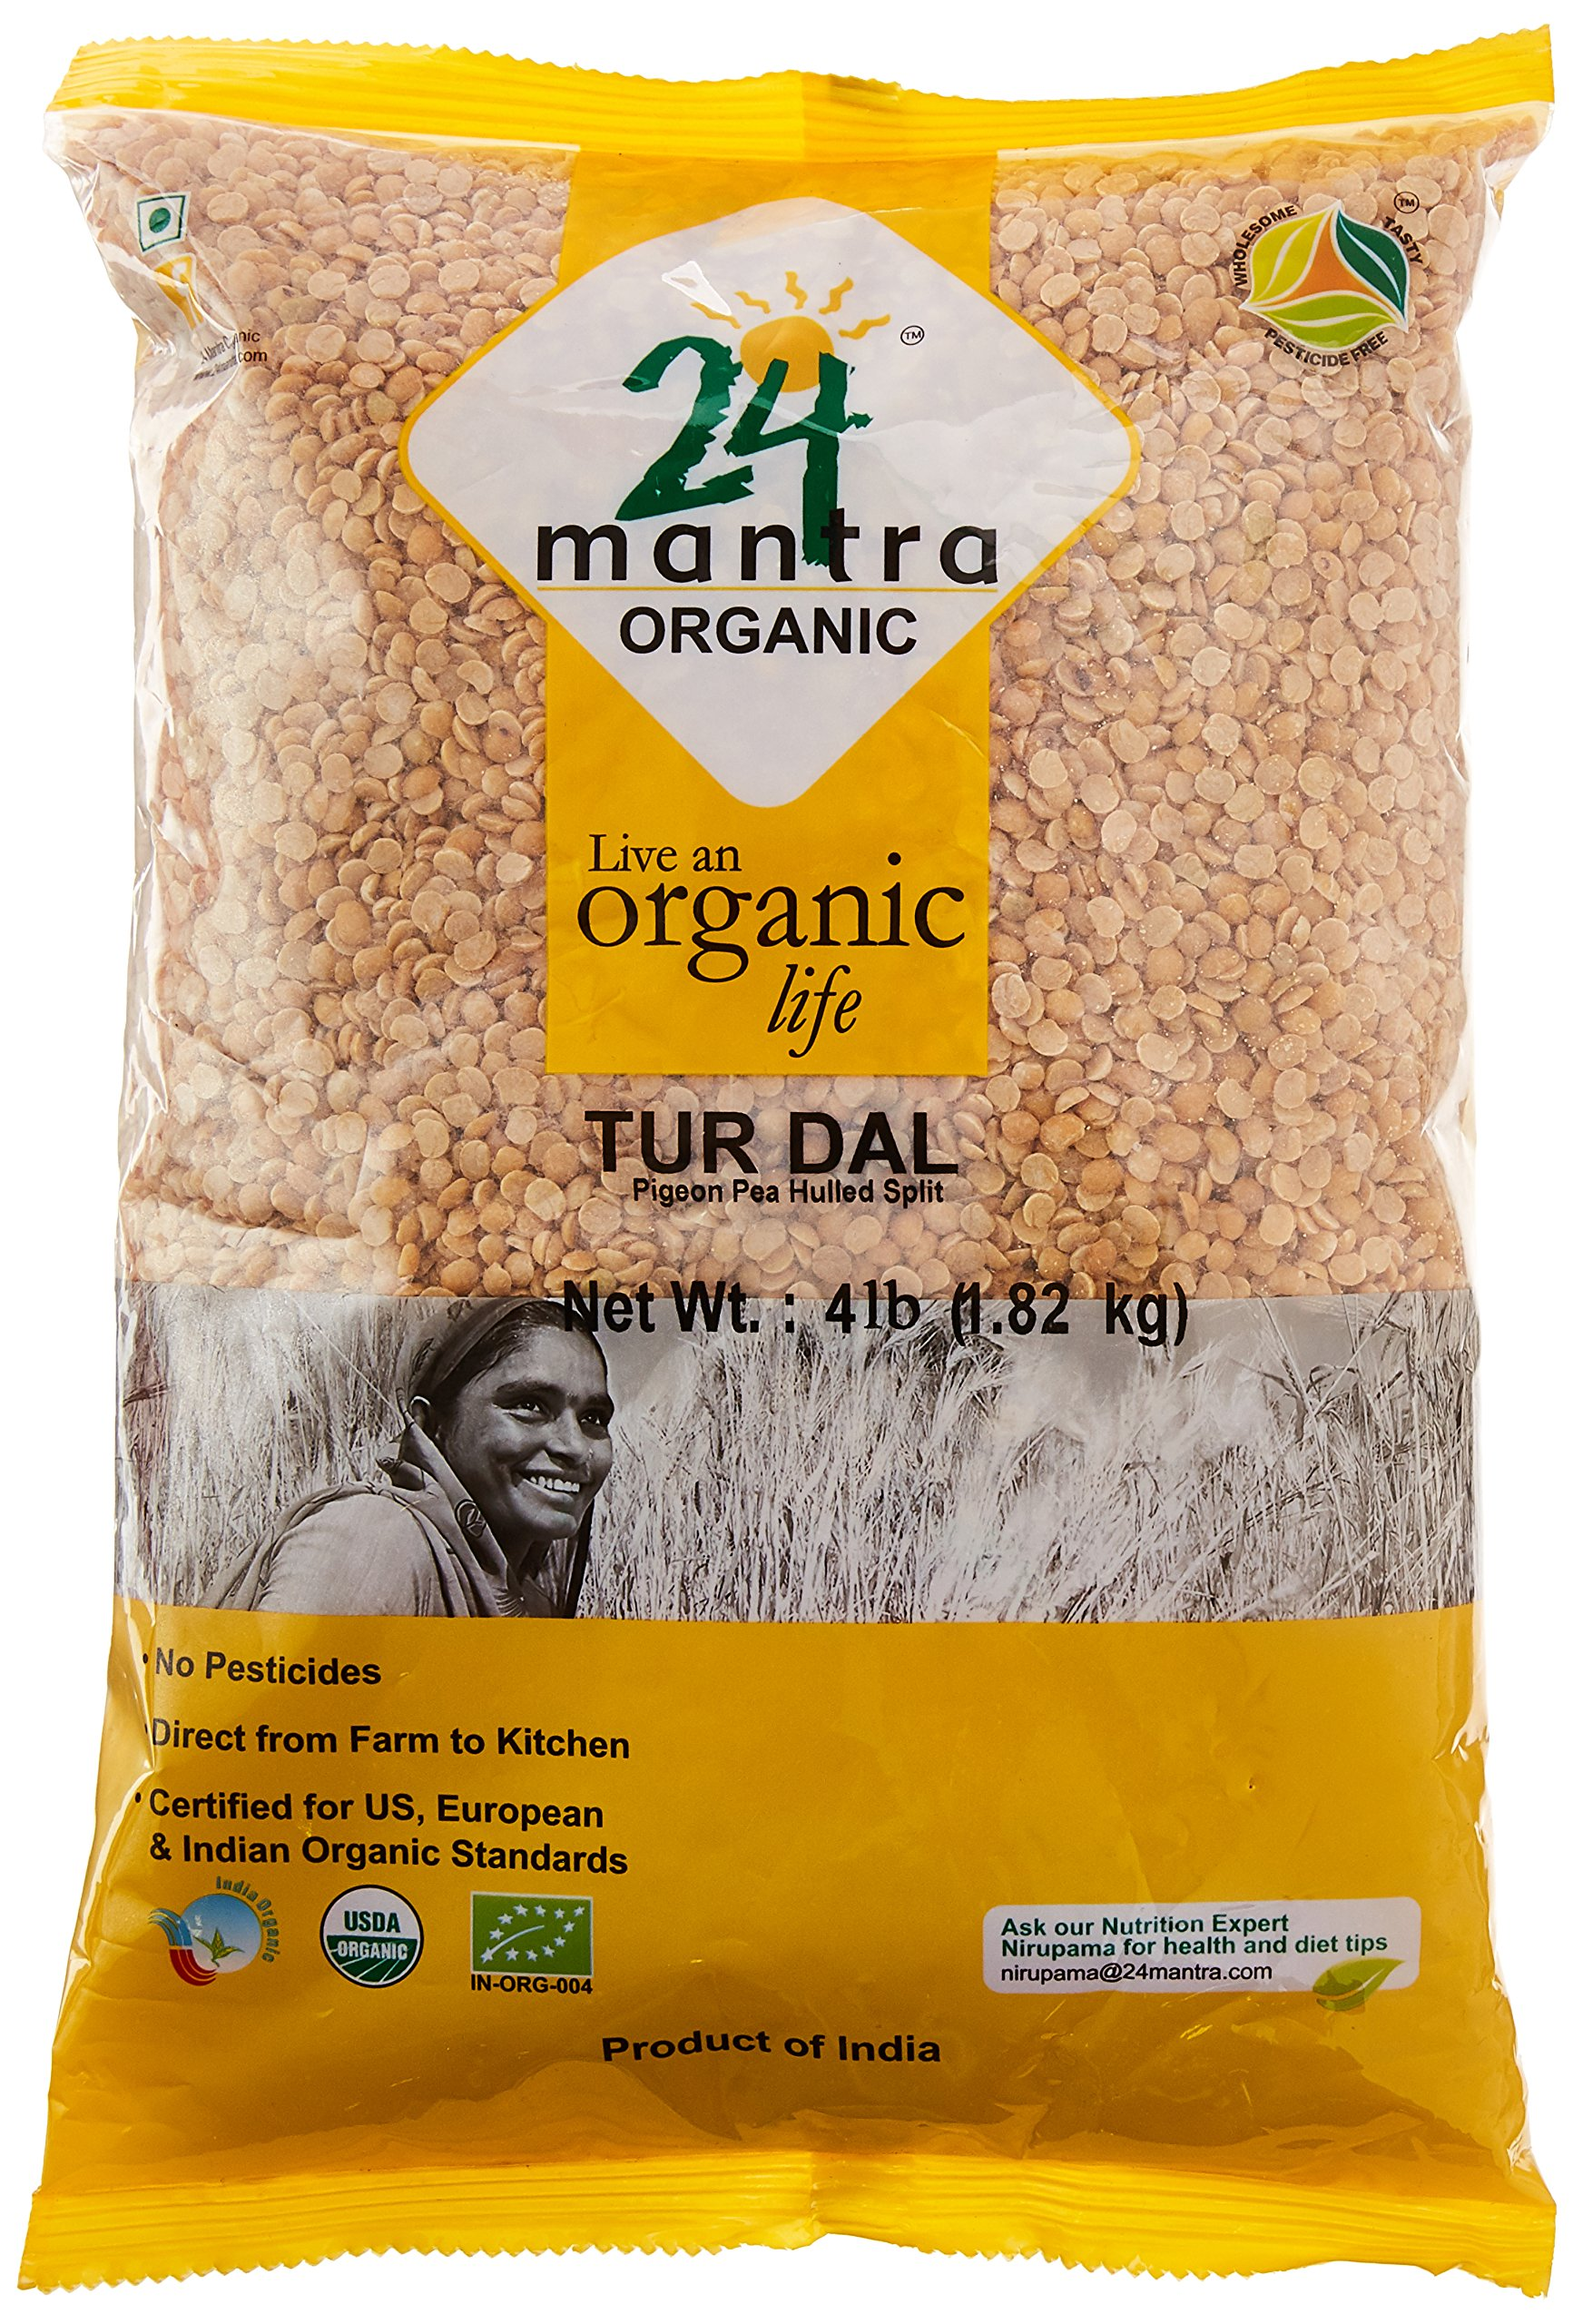 Organic Toor Dal - Organic Split Pigeon Peas (Toor Dal) -USDA Certified Organic - European Union Certified Organic -Pesticides Free - Adulteration Free - Sodium Free - 4 Lbs - 24 Mantra Organic by 24 MANTRA